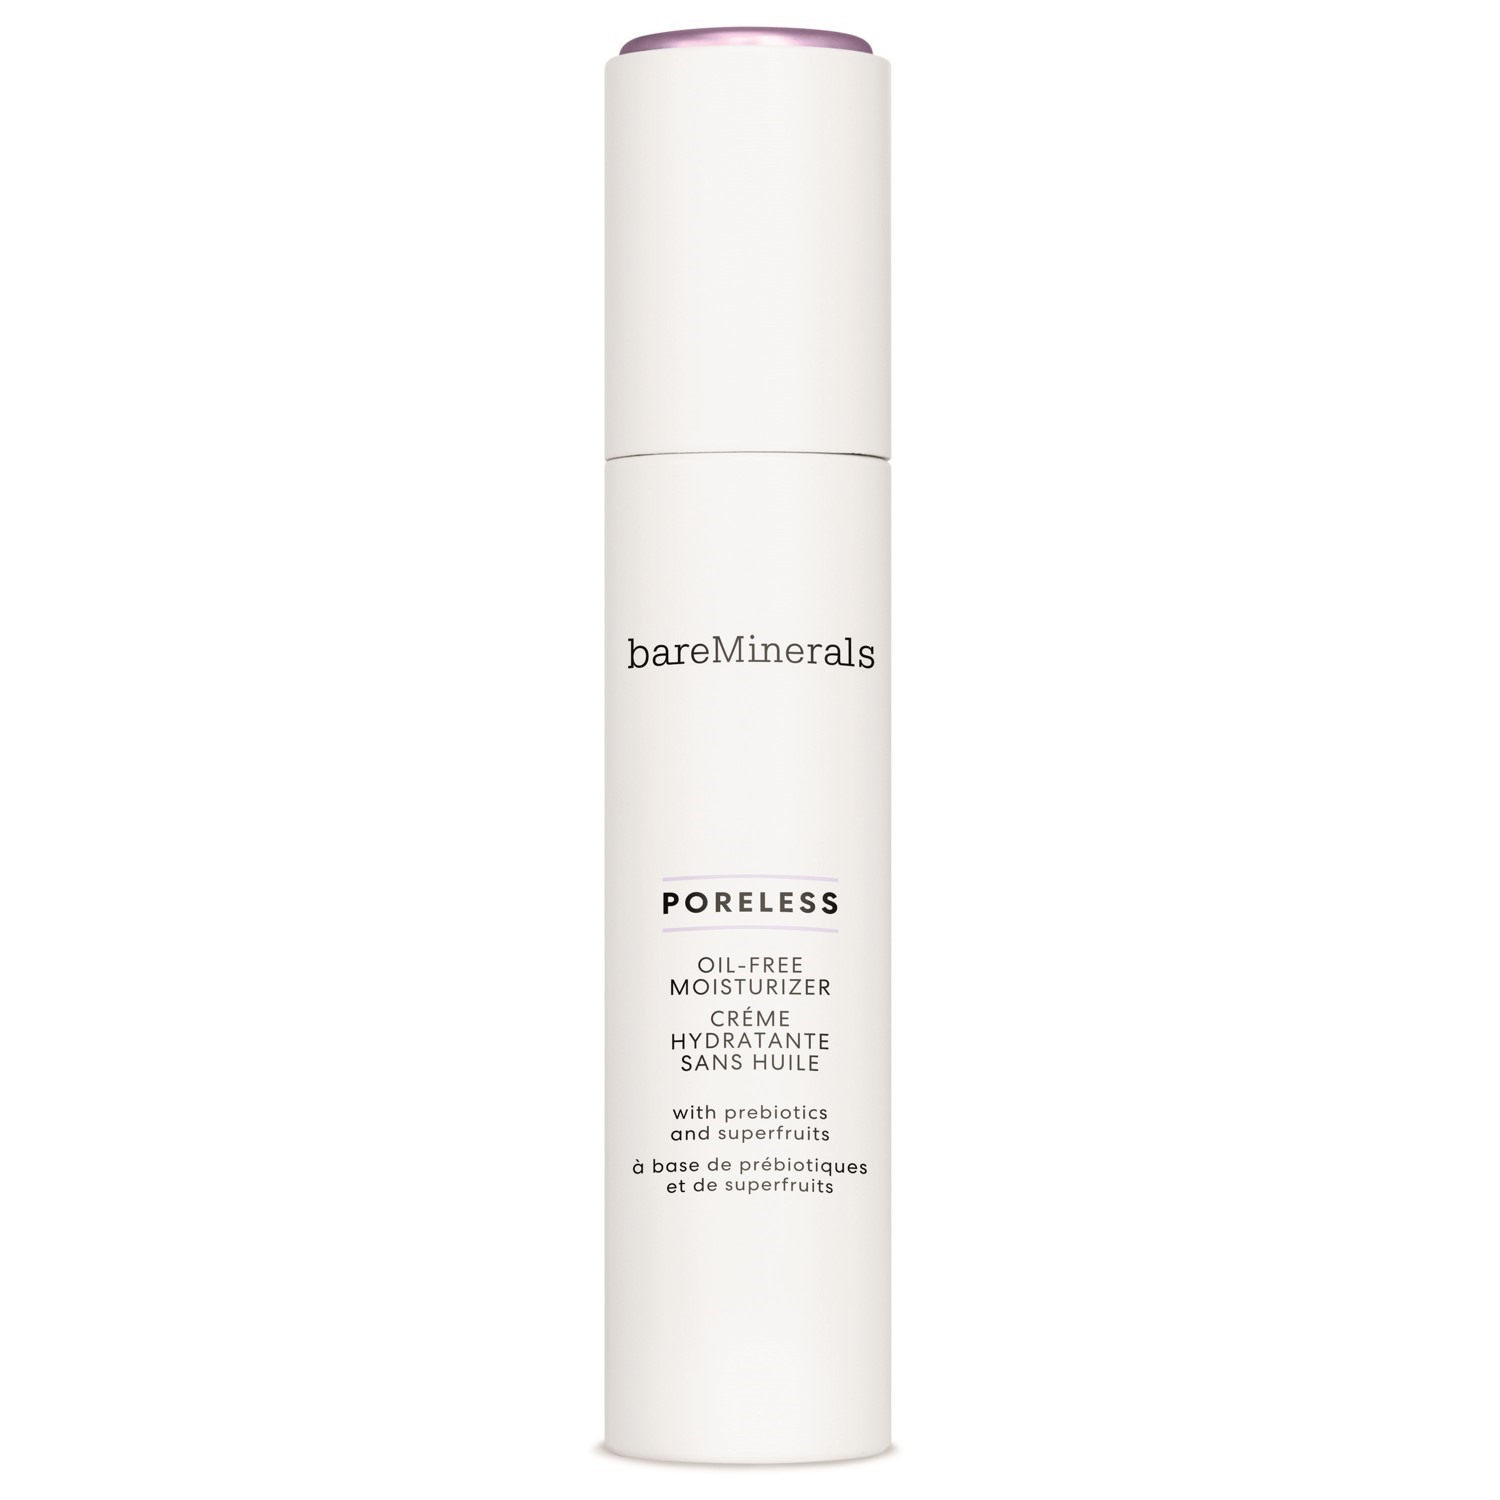 bareMinerals Poreless Oil-Free Moisturiser 50ml